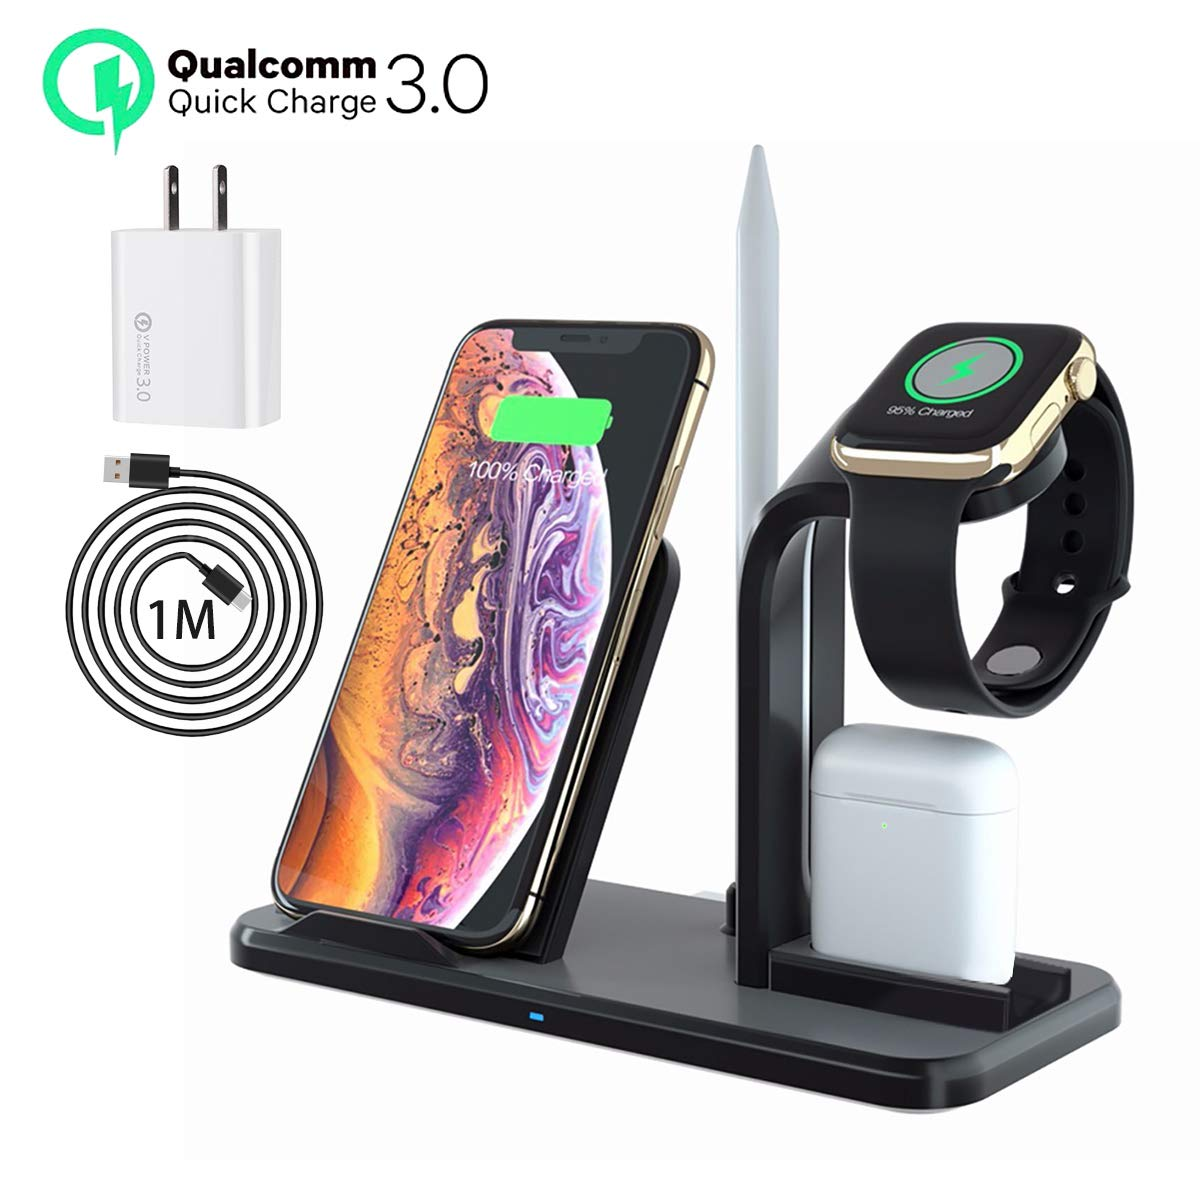 LA GUAPA Wireless Charger, Qi-Certified 10W Wireless Charging Station Stand Dock, Compatible with iPhone Wireless Charger iPhone 11/11 Pro/11Pro Max/XS Max/XR Galaxy Note 10+/S10+ Huawei P30 Pro